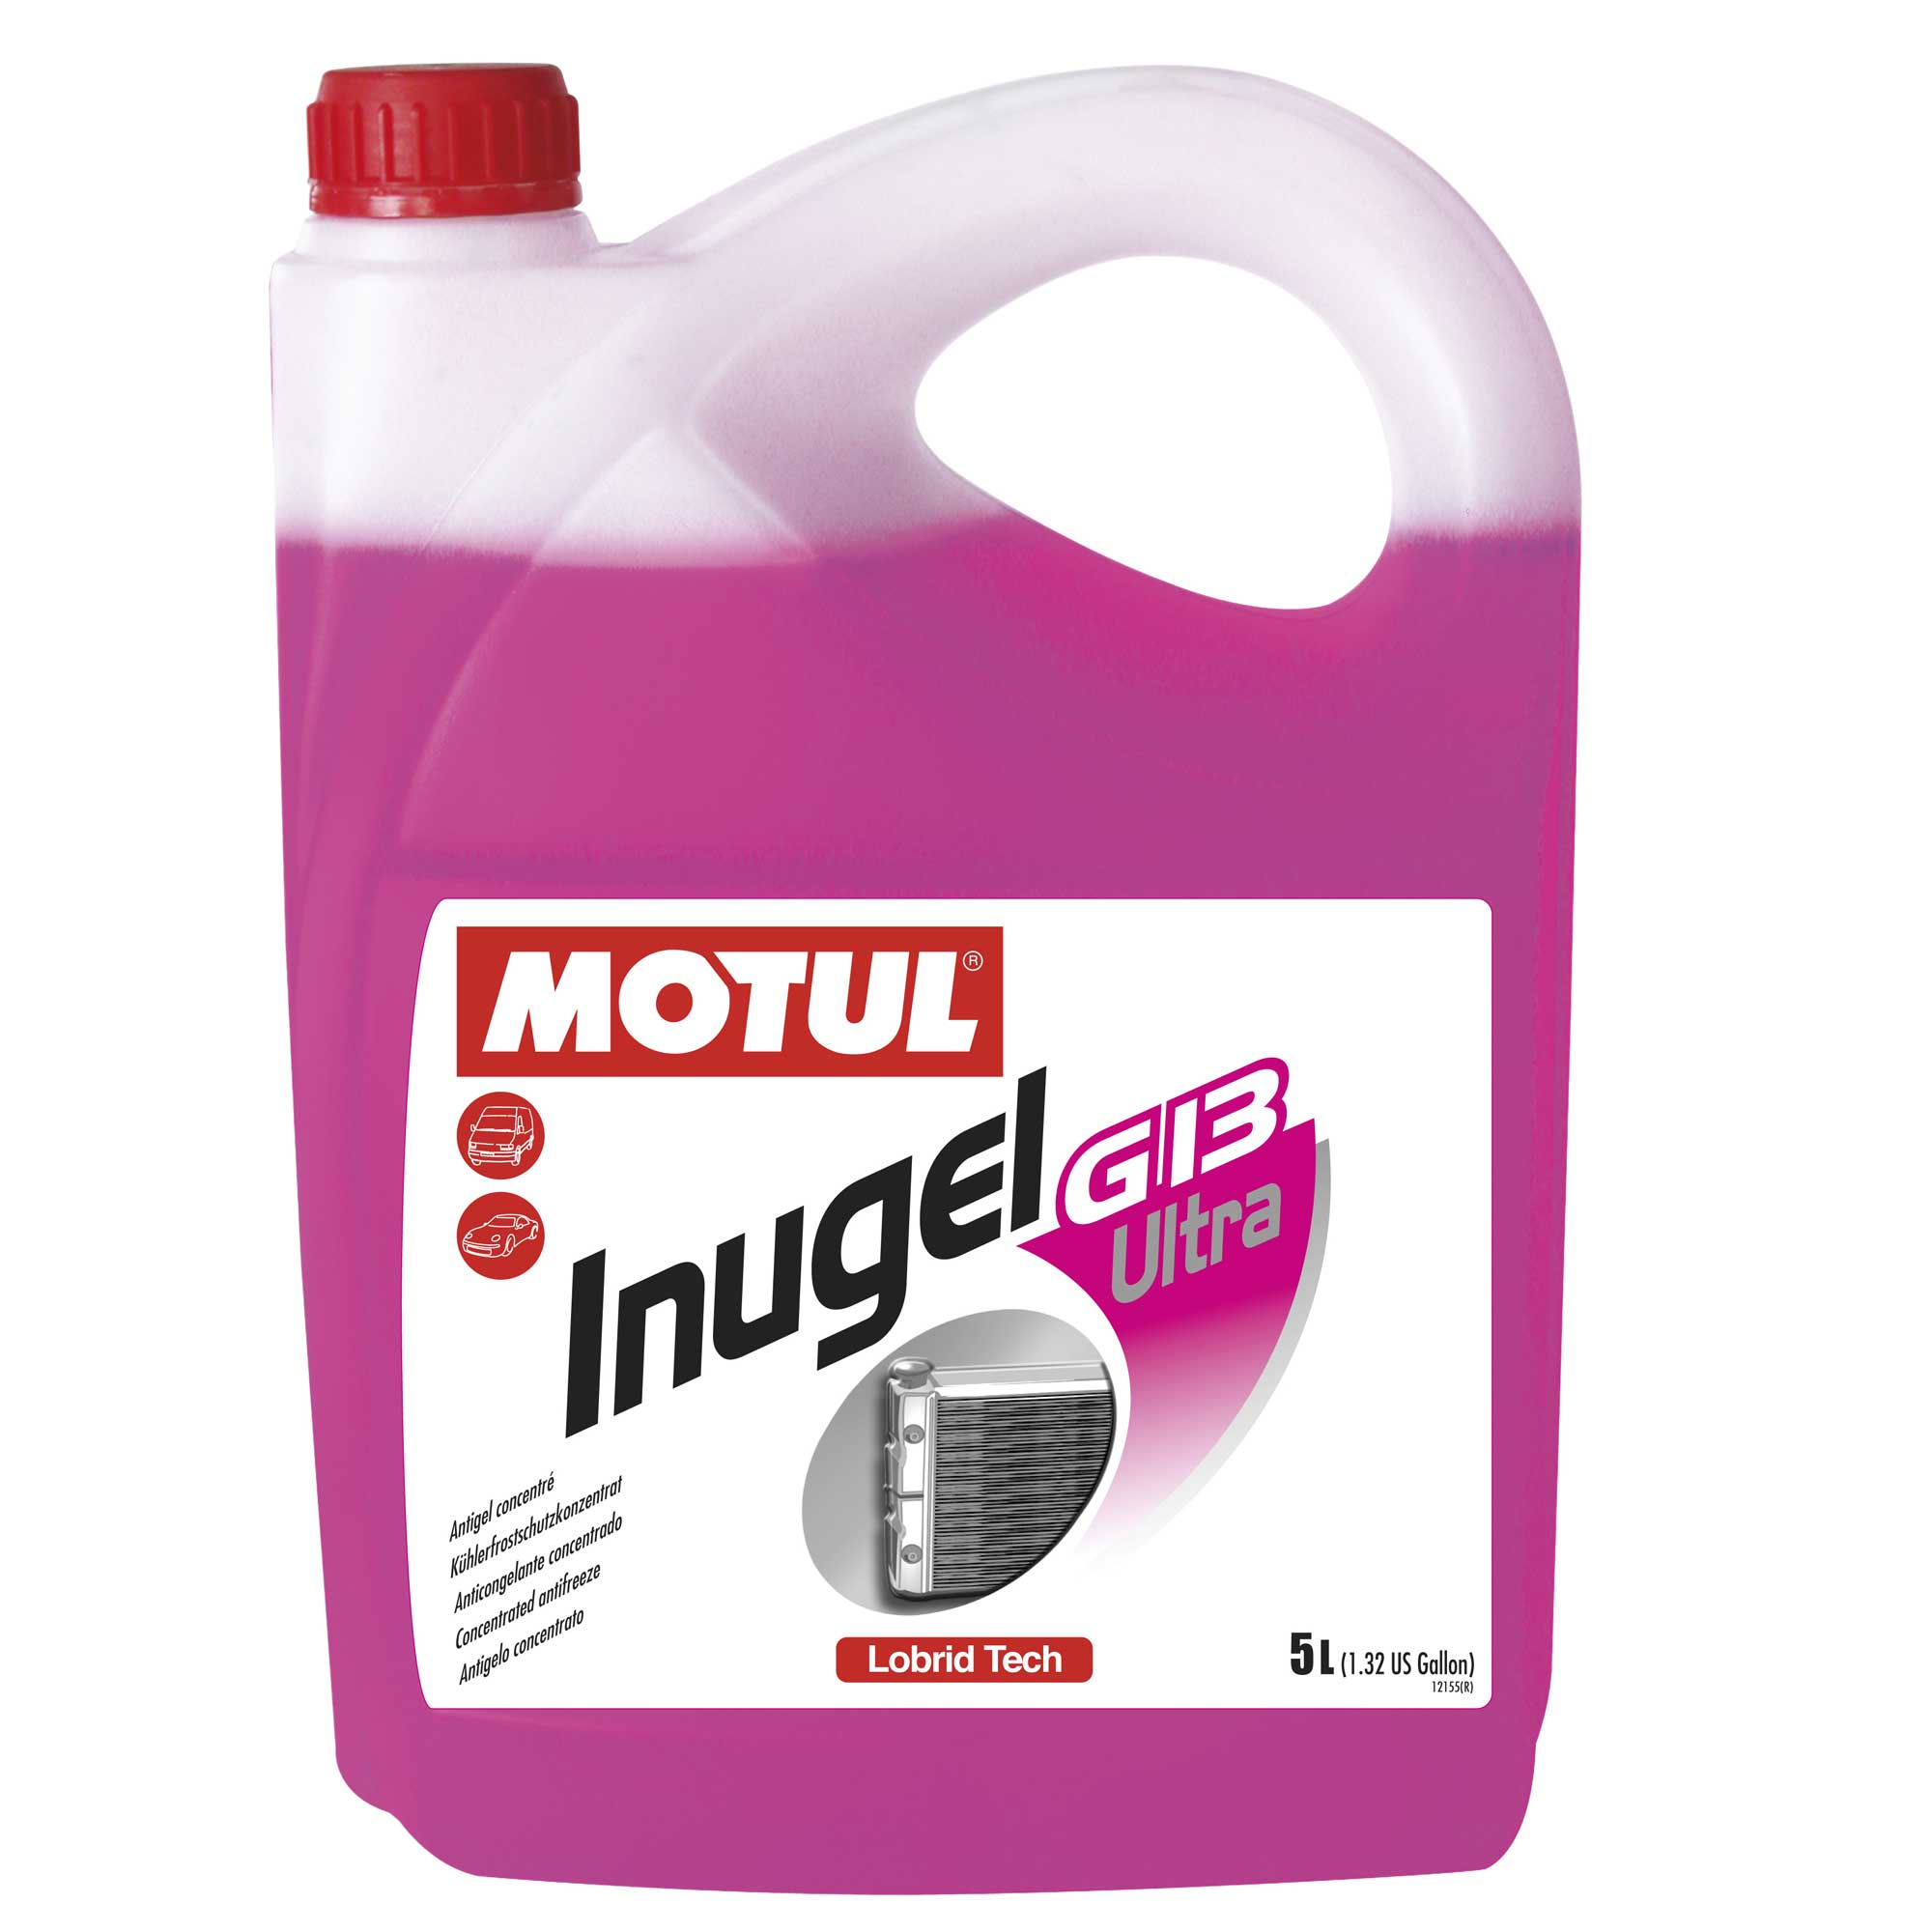 mot_inugel-g13-ultra-5l-hd